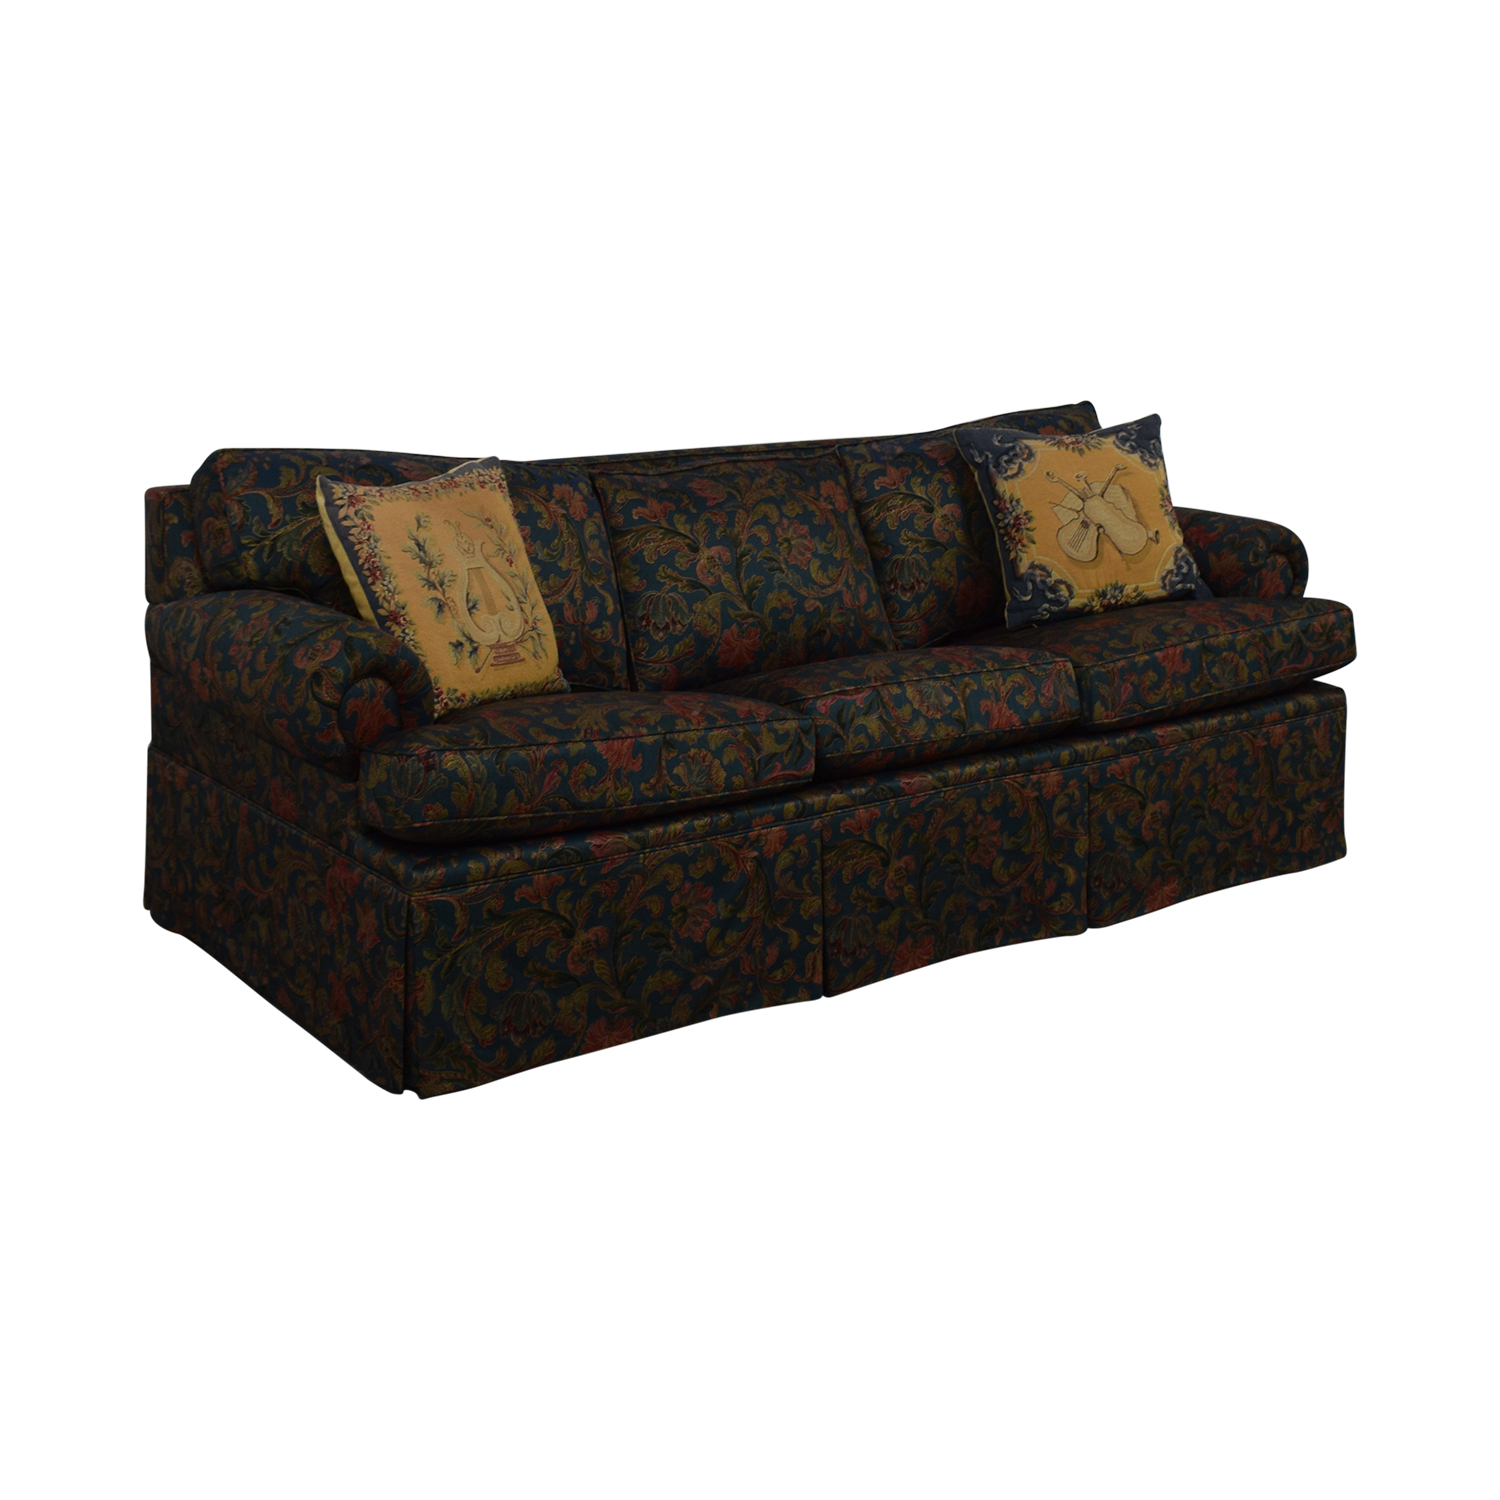 Carlyle Carlyle Queen Sleeper Sofa used